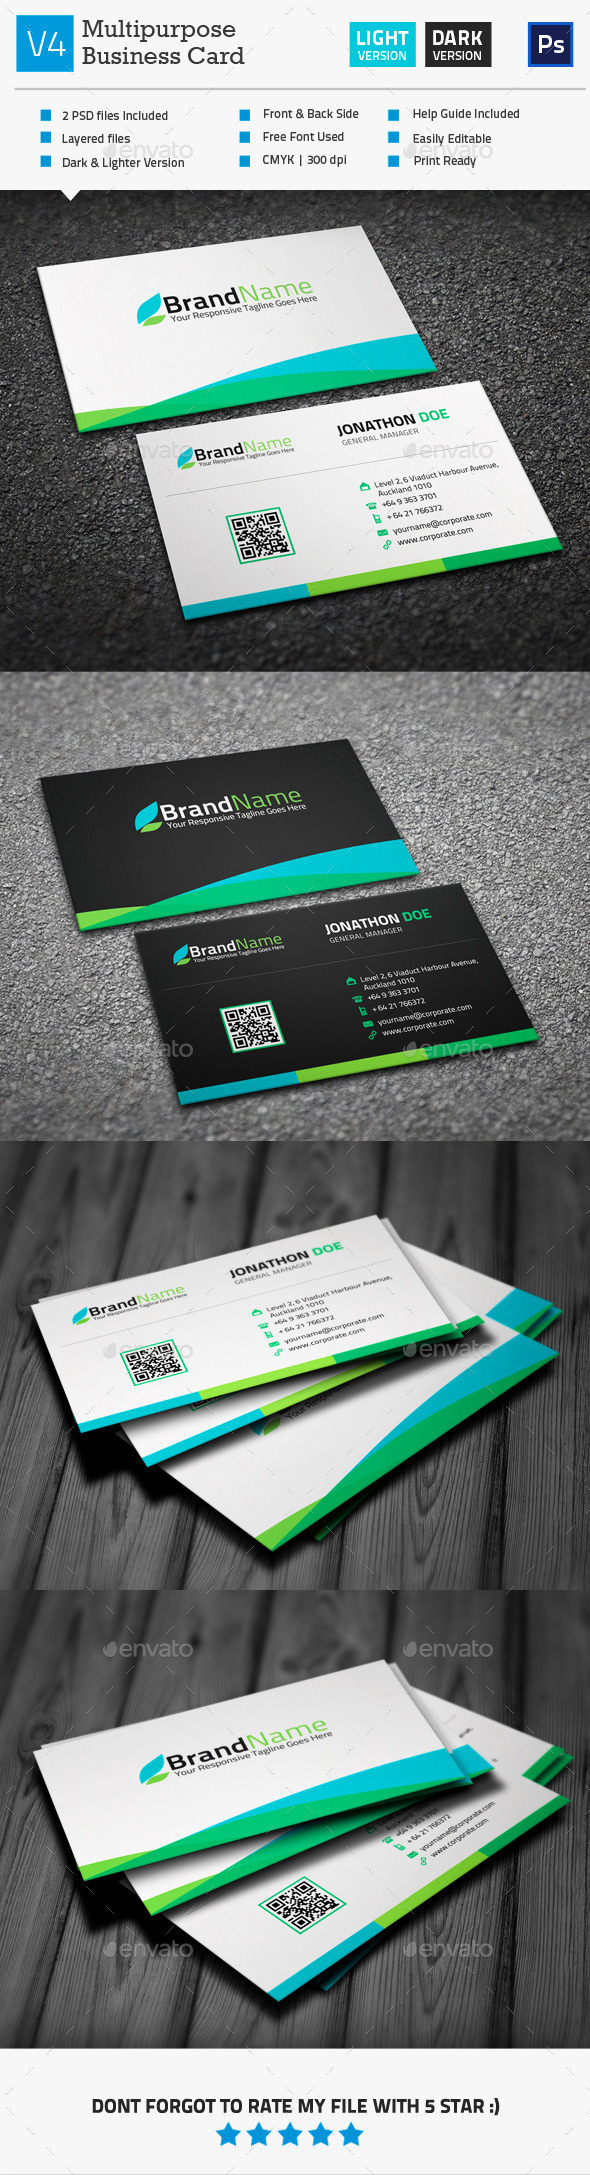 GraphicRiver Multipurpose Business Card V4 10251490